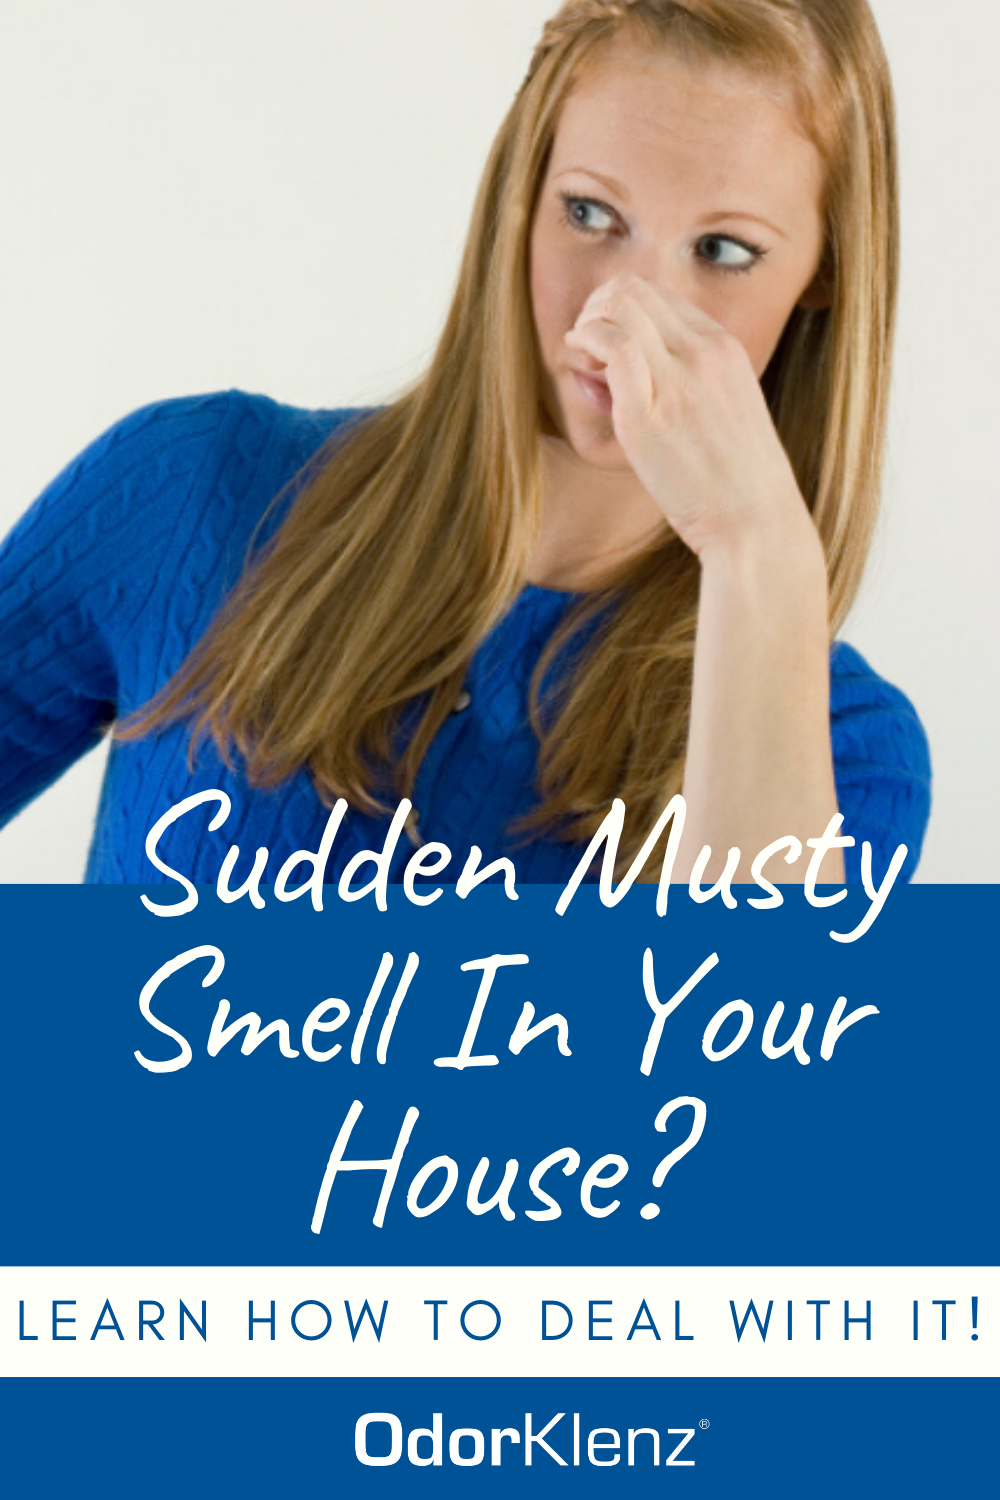 Musty Smell In Your House? in 2020 Musty smell in house